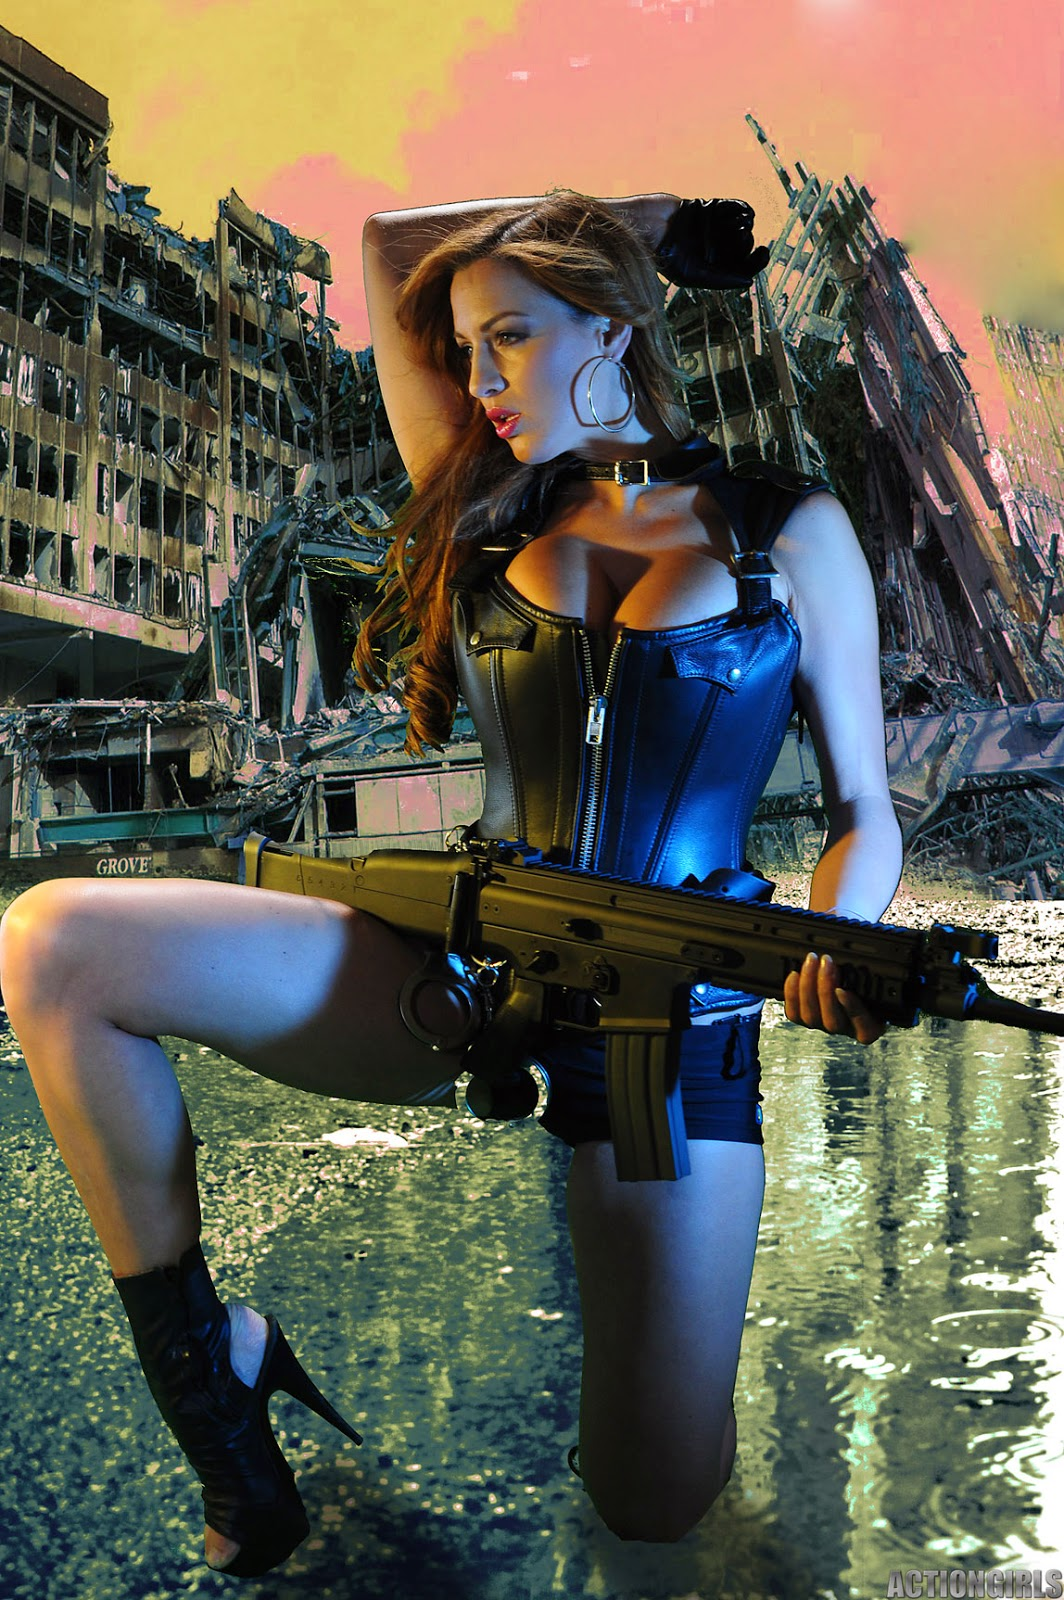 Jordan Carver Big Boobs Show With Gun In Leather Killer -1325